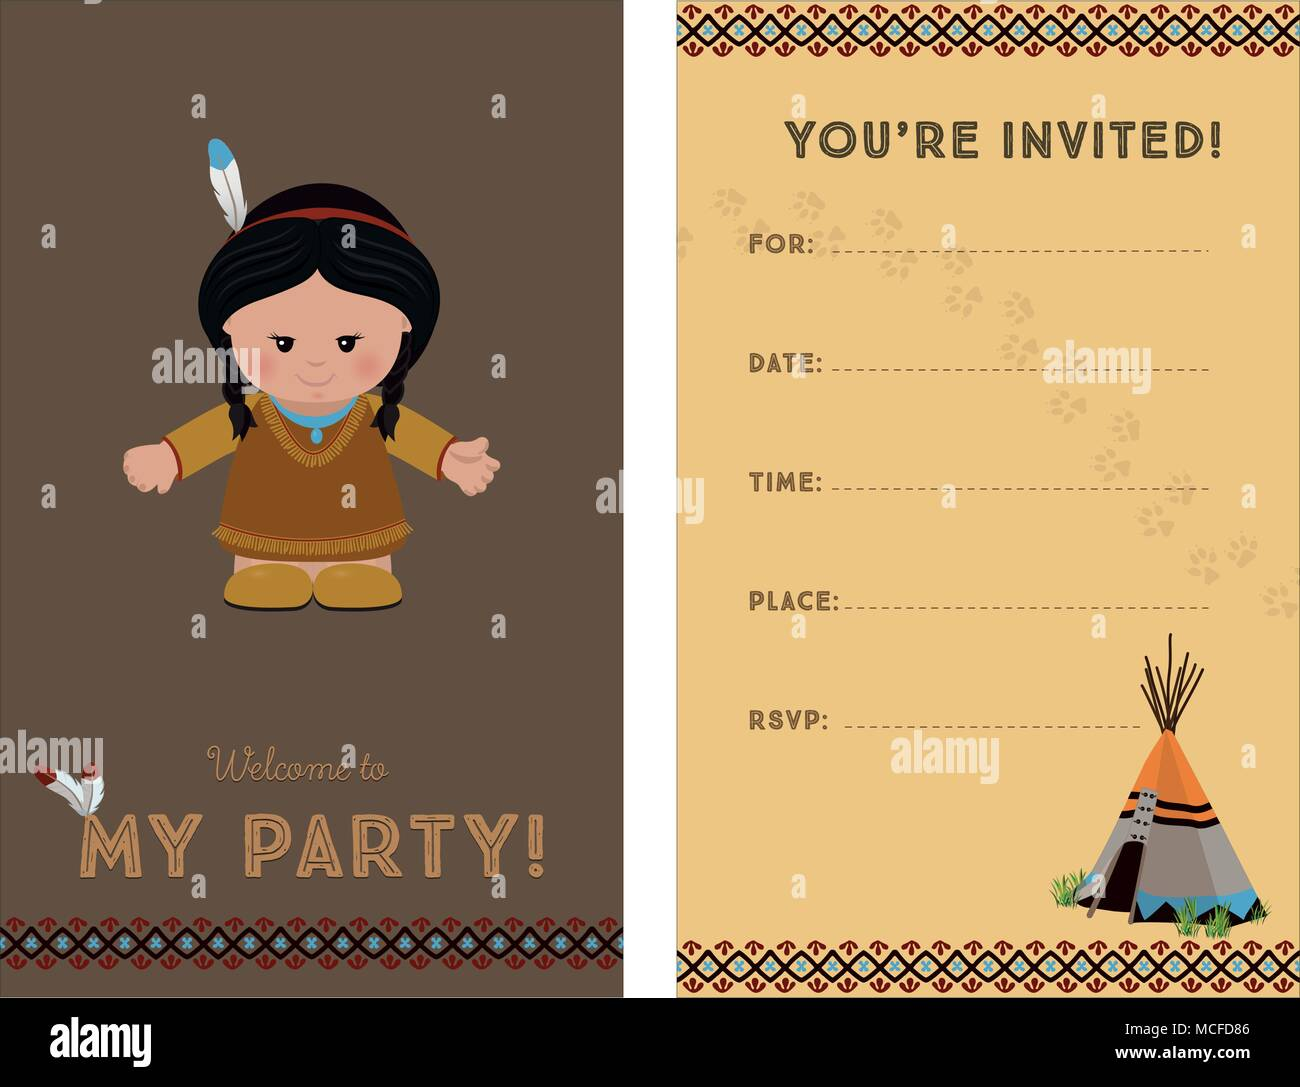 invitation to party card invitation with american indian girl for